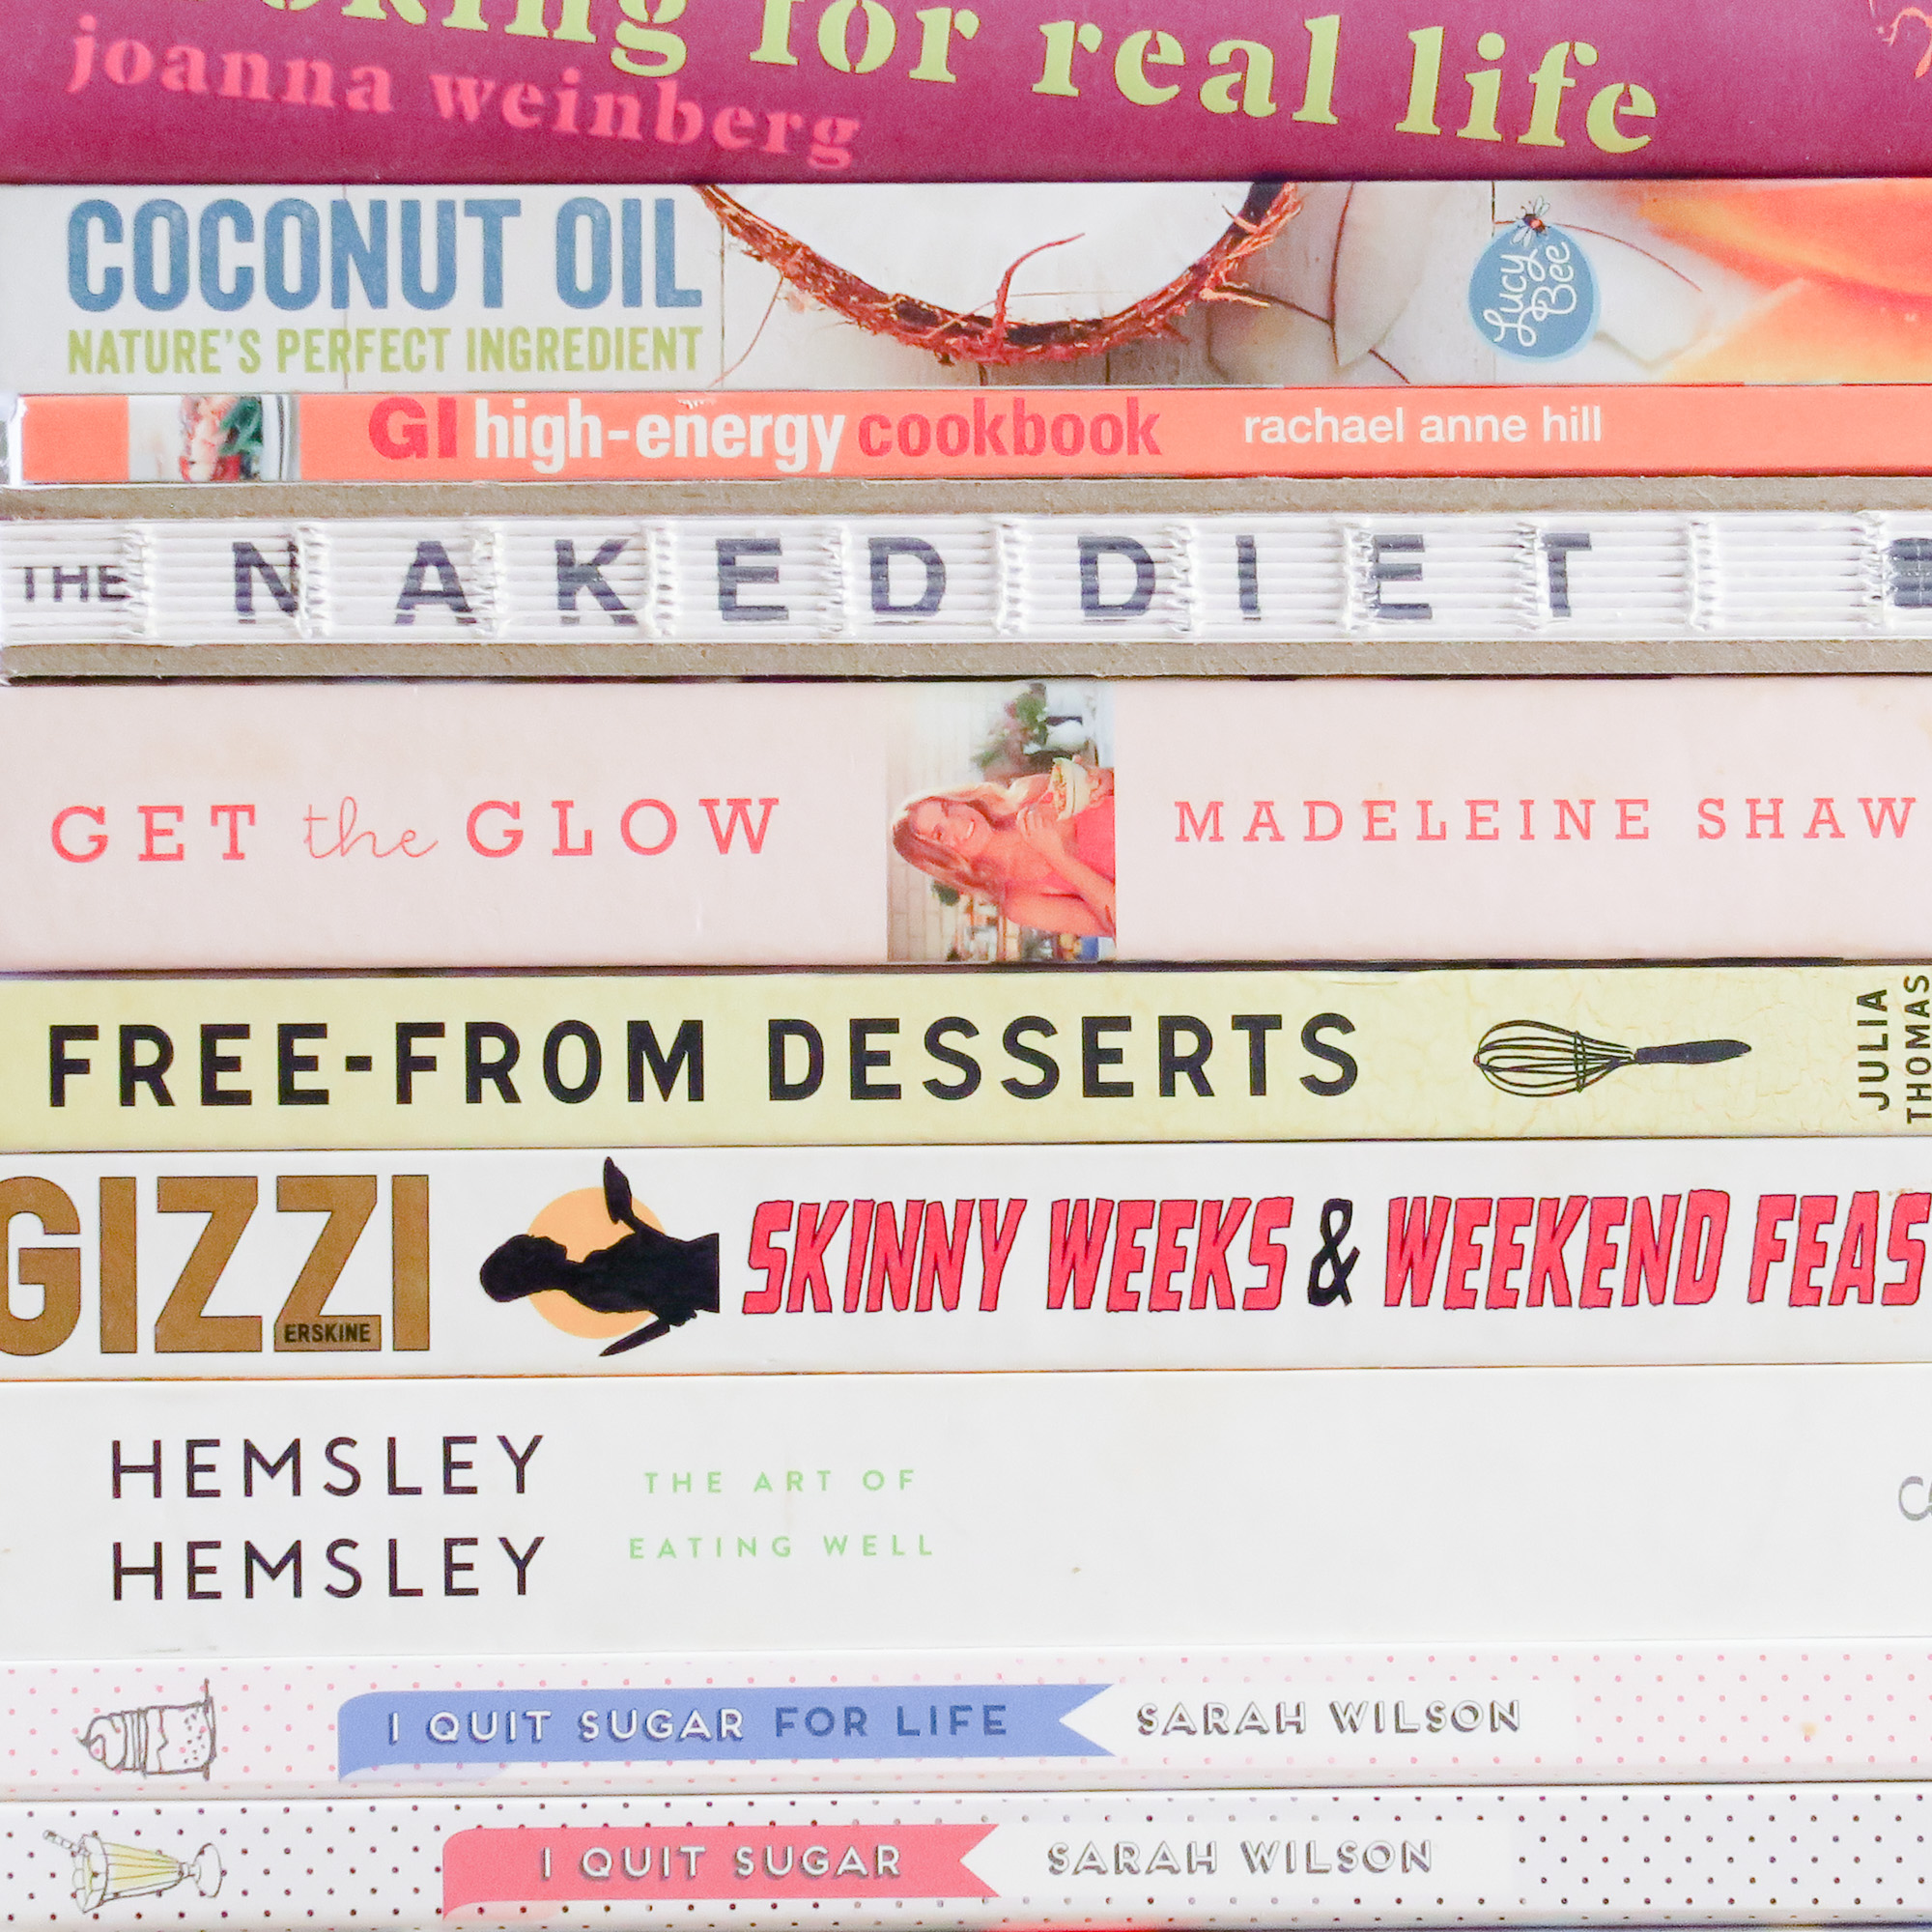 Seemingly healthy cookbooks, but no longer on brand.